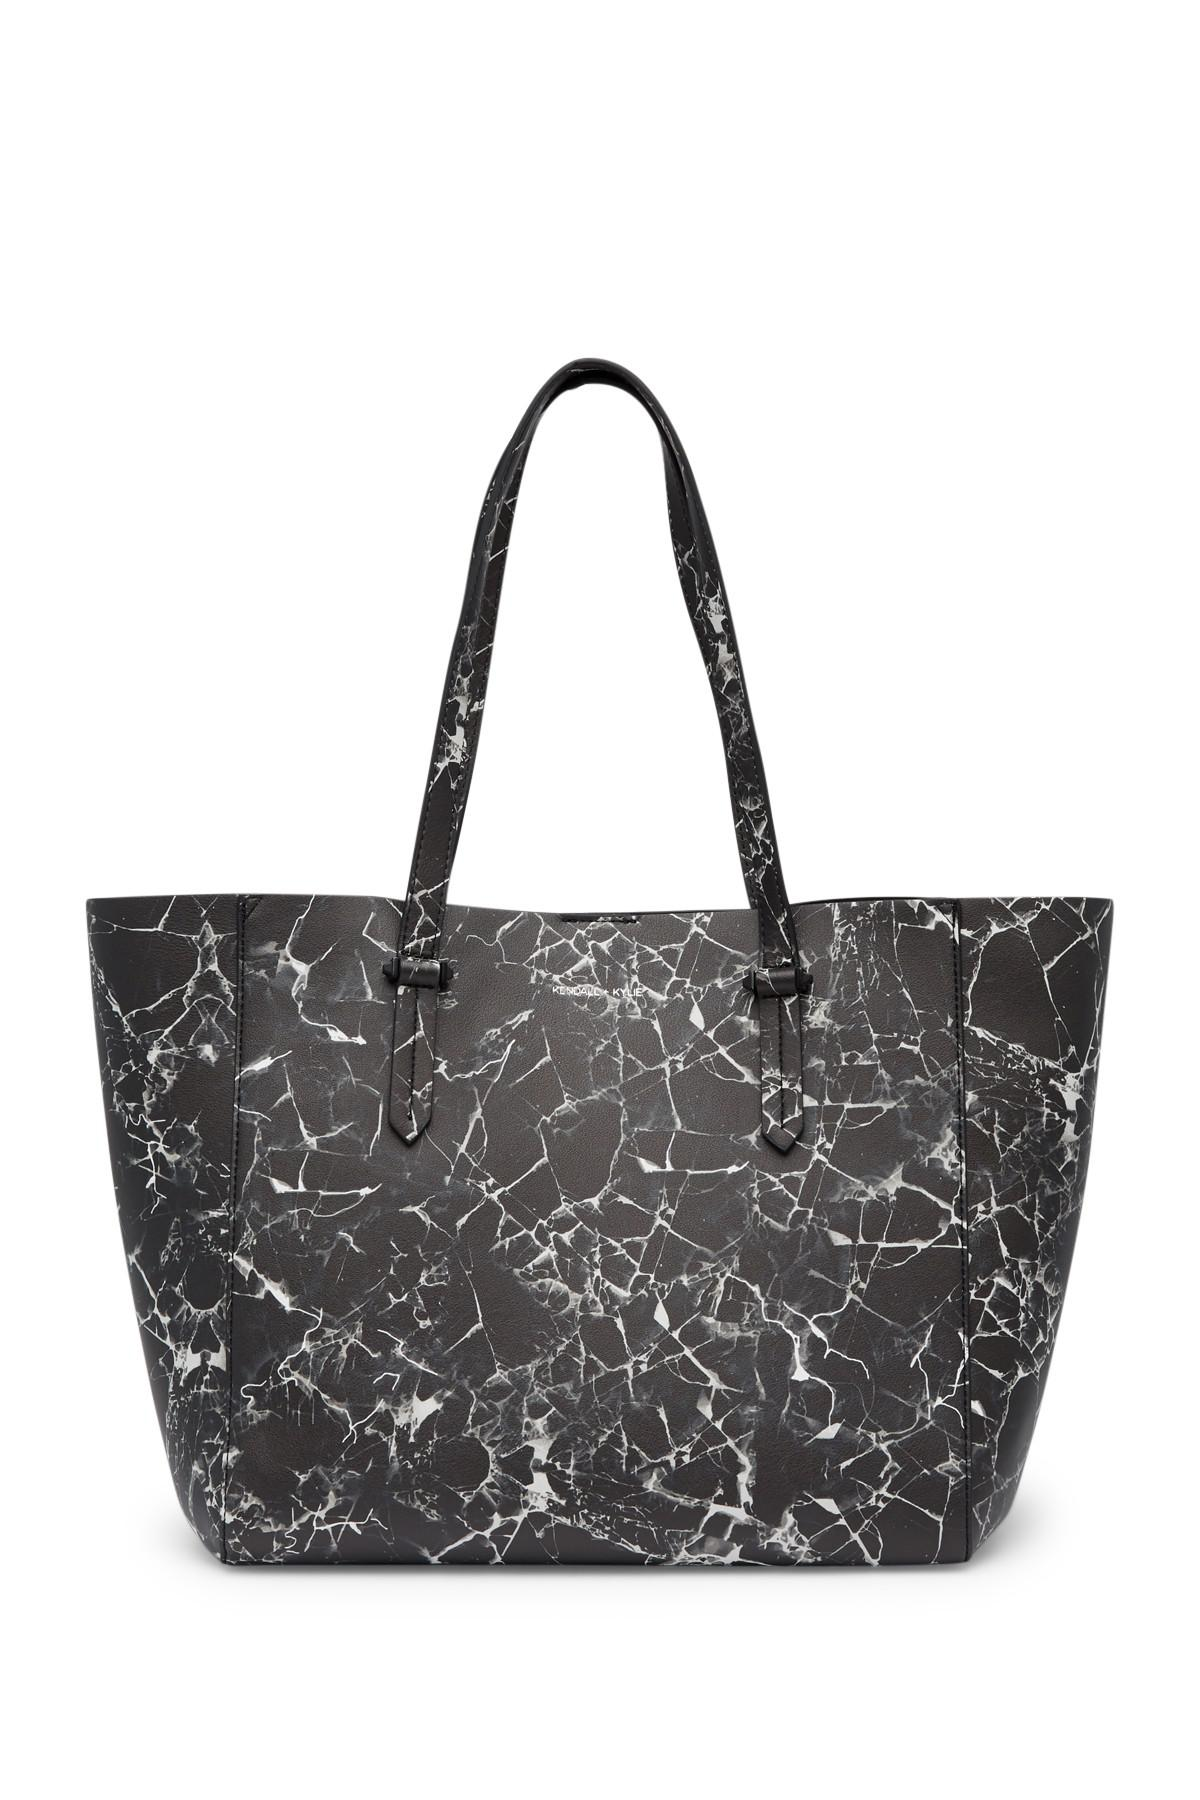 bc78af916295 Lyst - Kendall + Kylie Izzy Marble Tote Bag   Pouch in Black